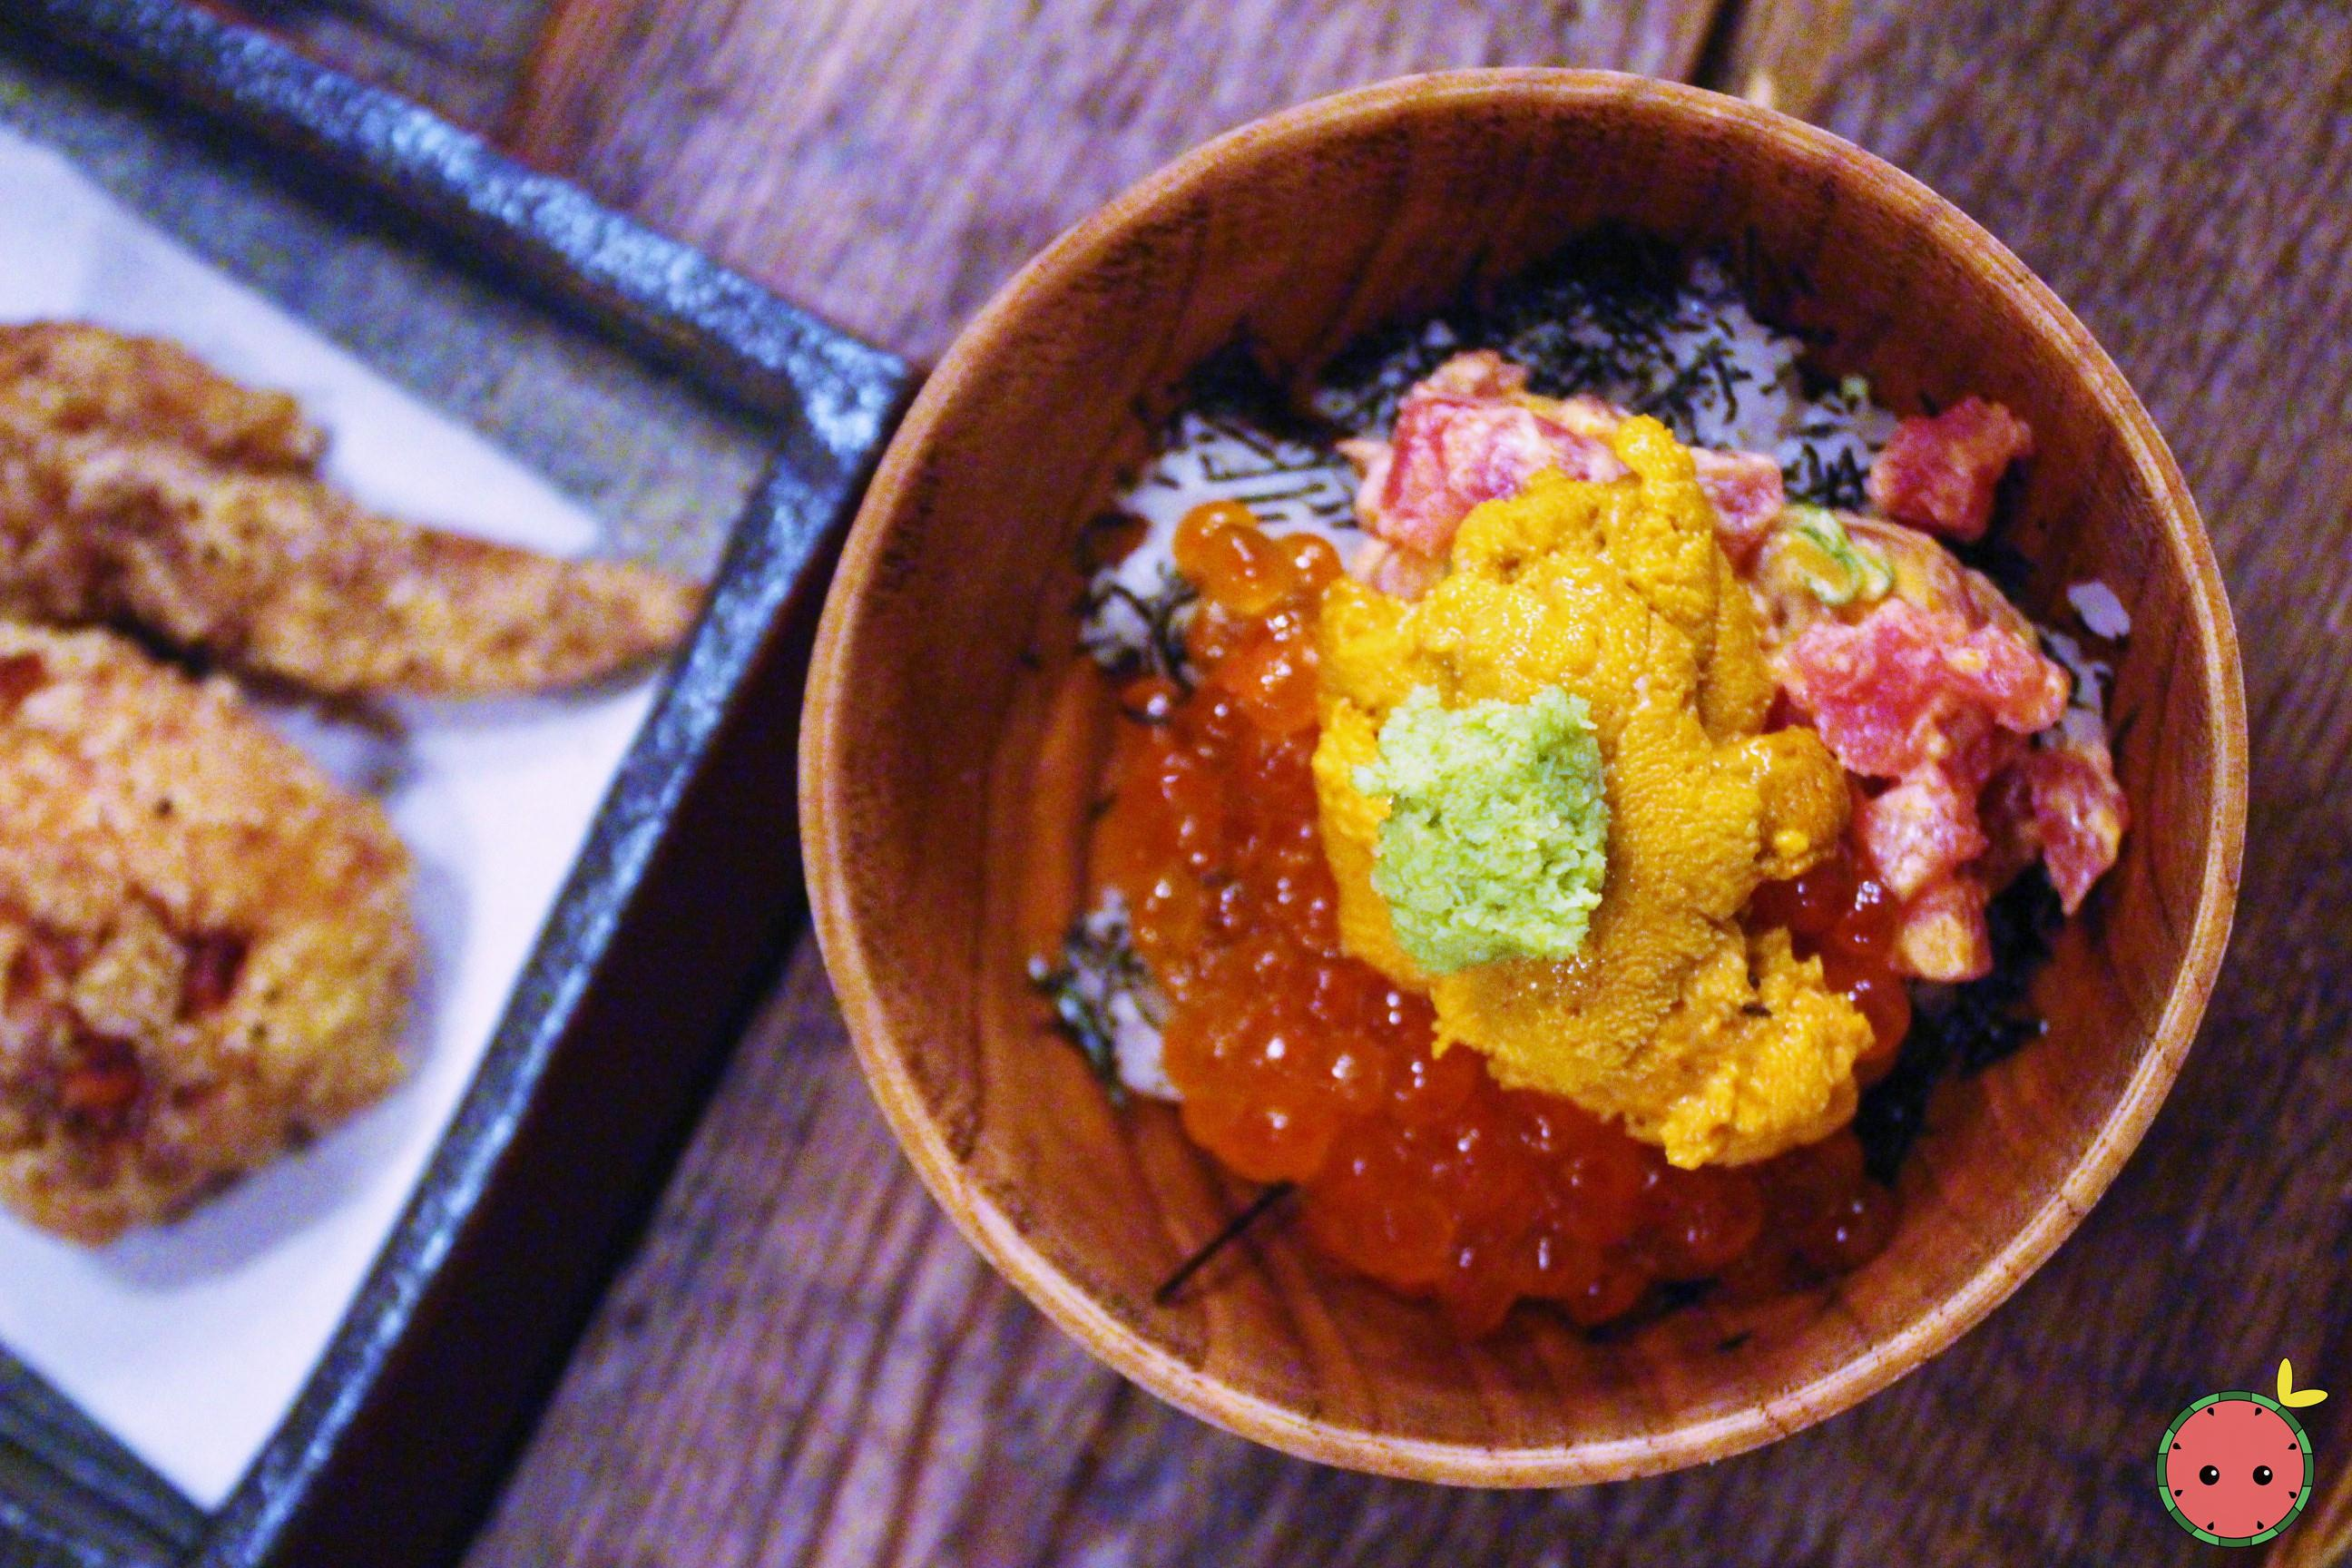 U&I - Uni, spicy maguro, ikura, sushi rice, sesame, roasted nori, and wasabi